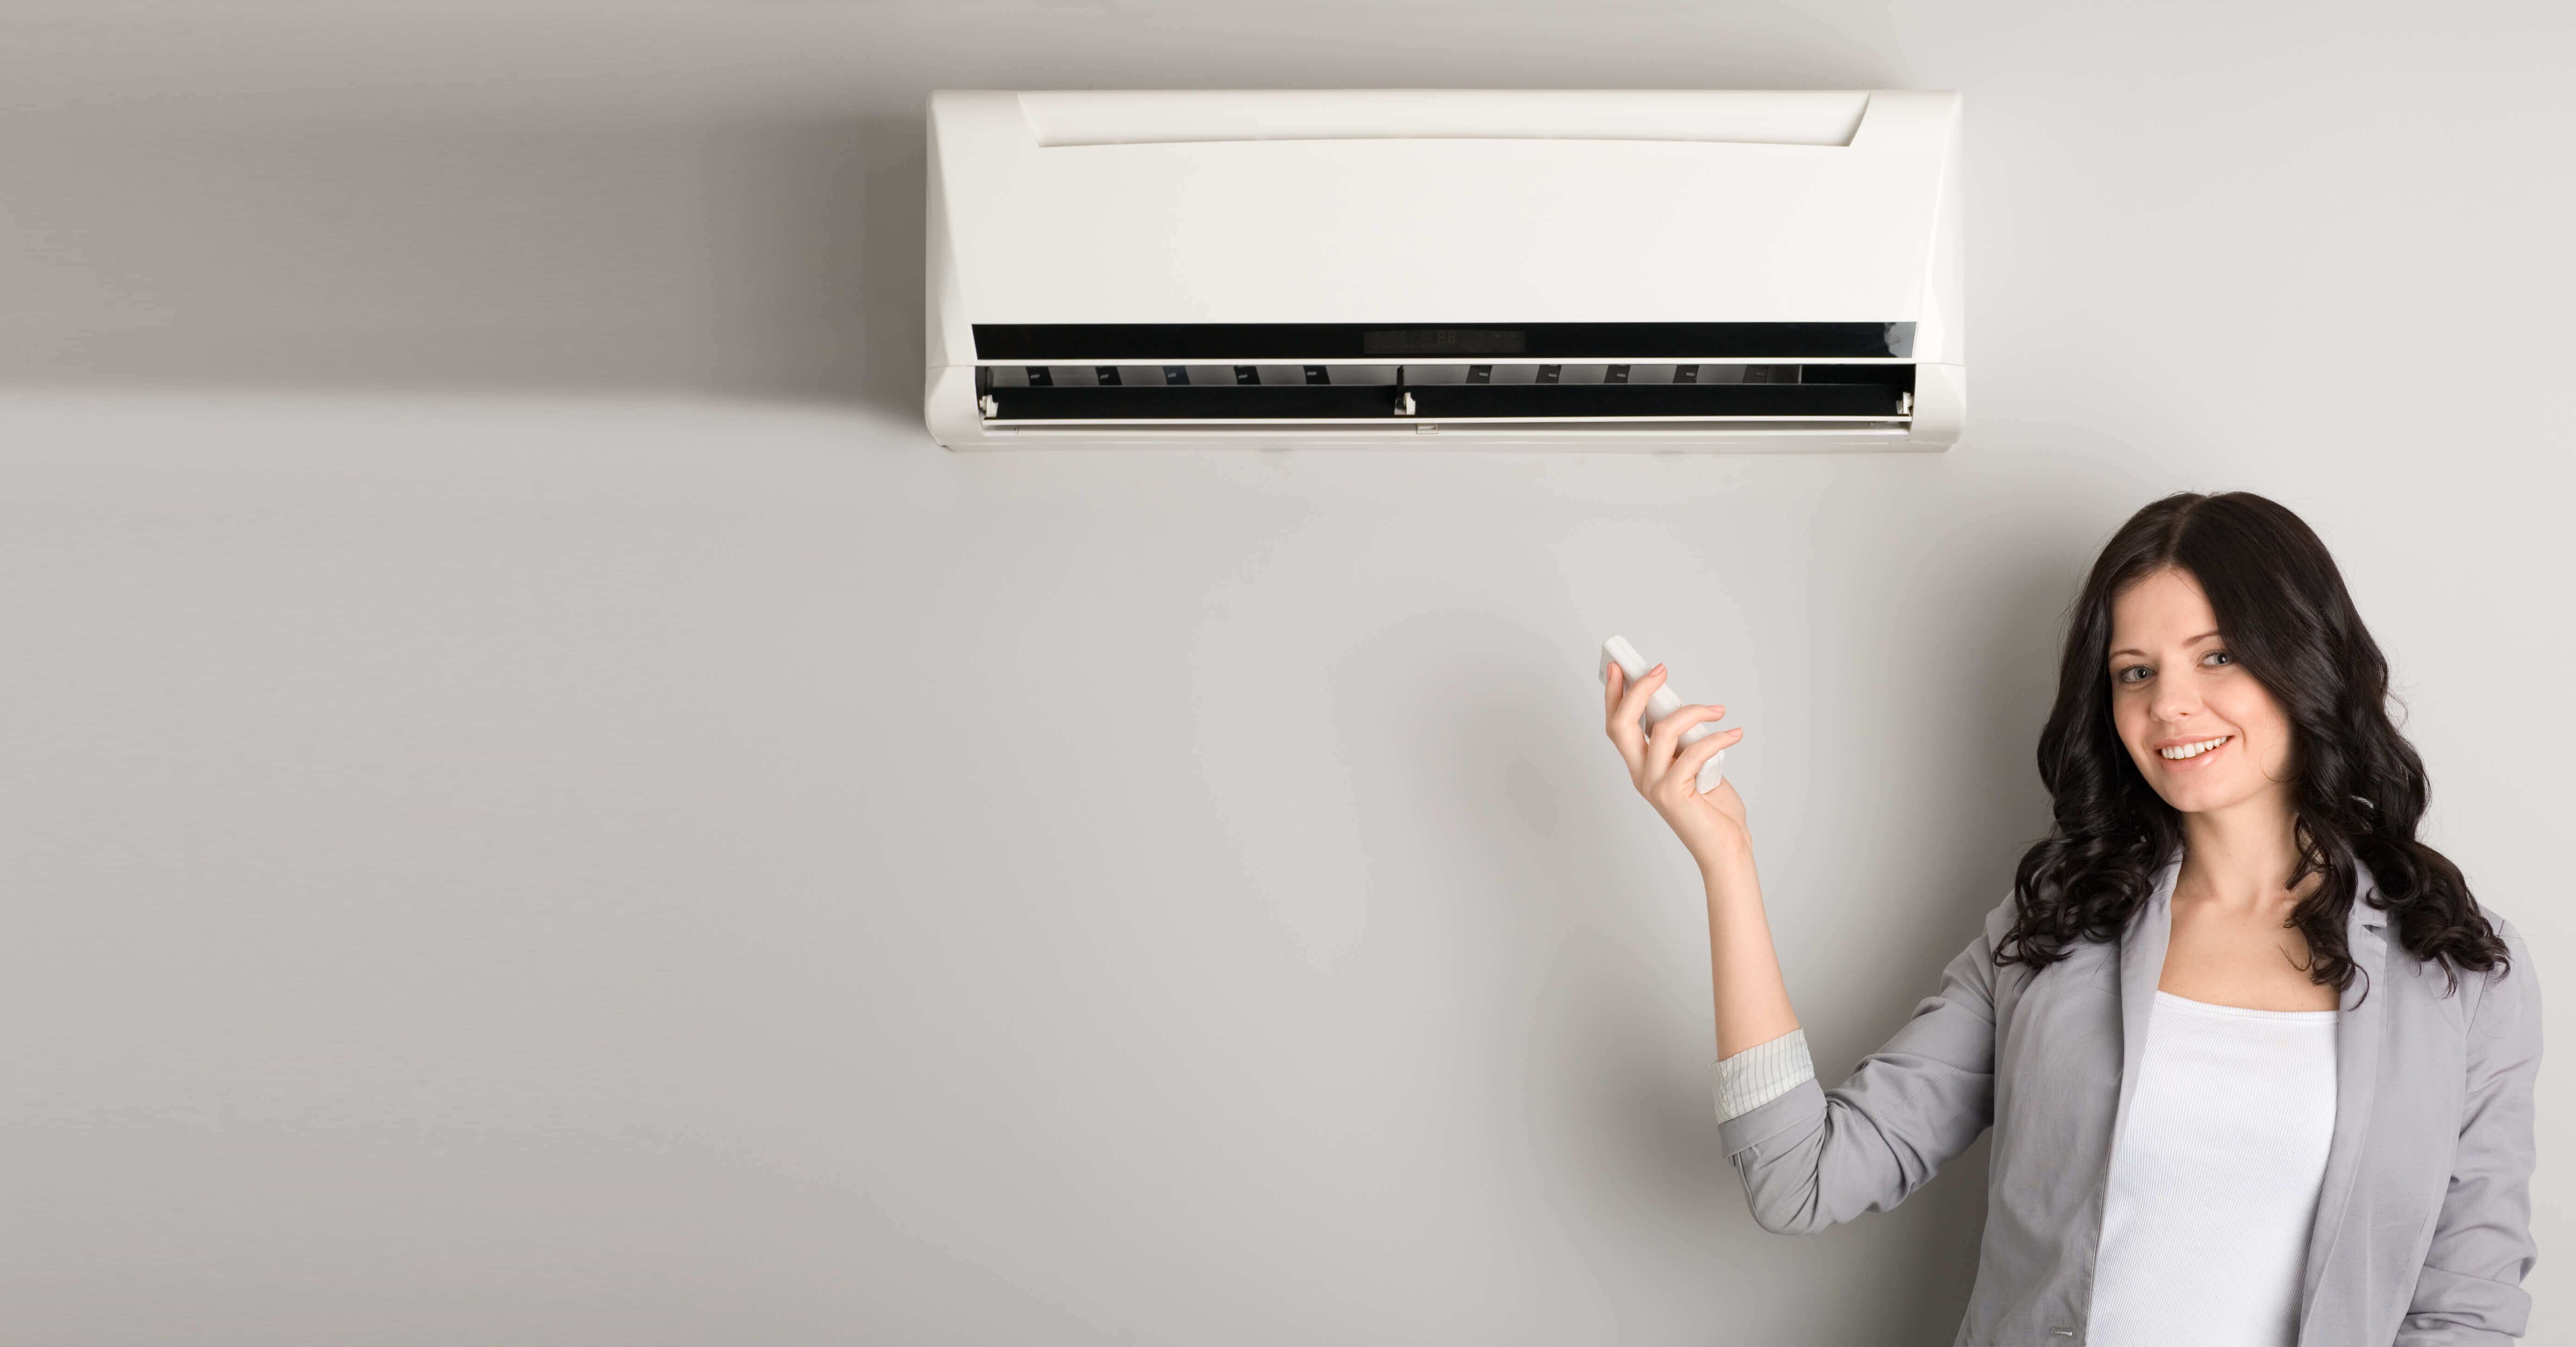 A ductless mini split air conditioner or heat pump is a